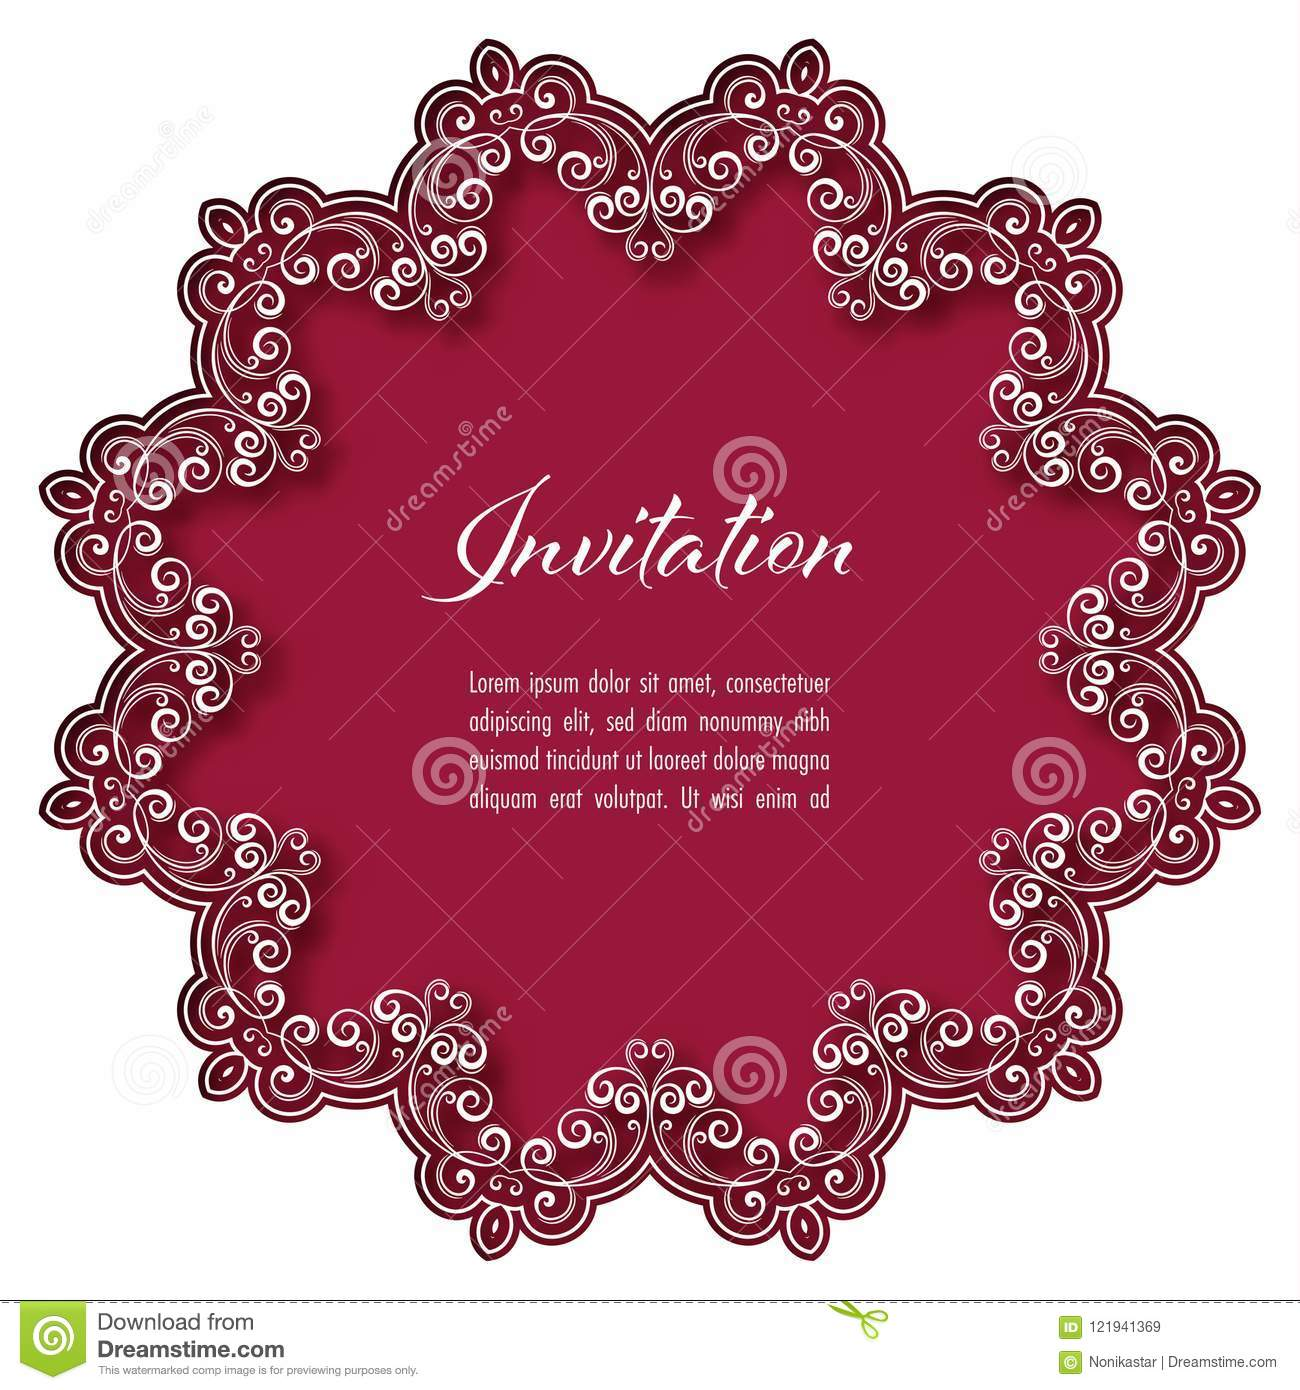 Vintage Invitation Template Stock Vector - Illustration of ...